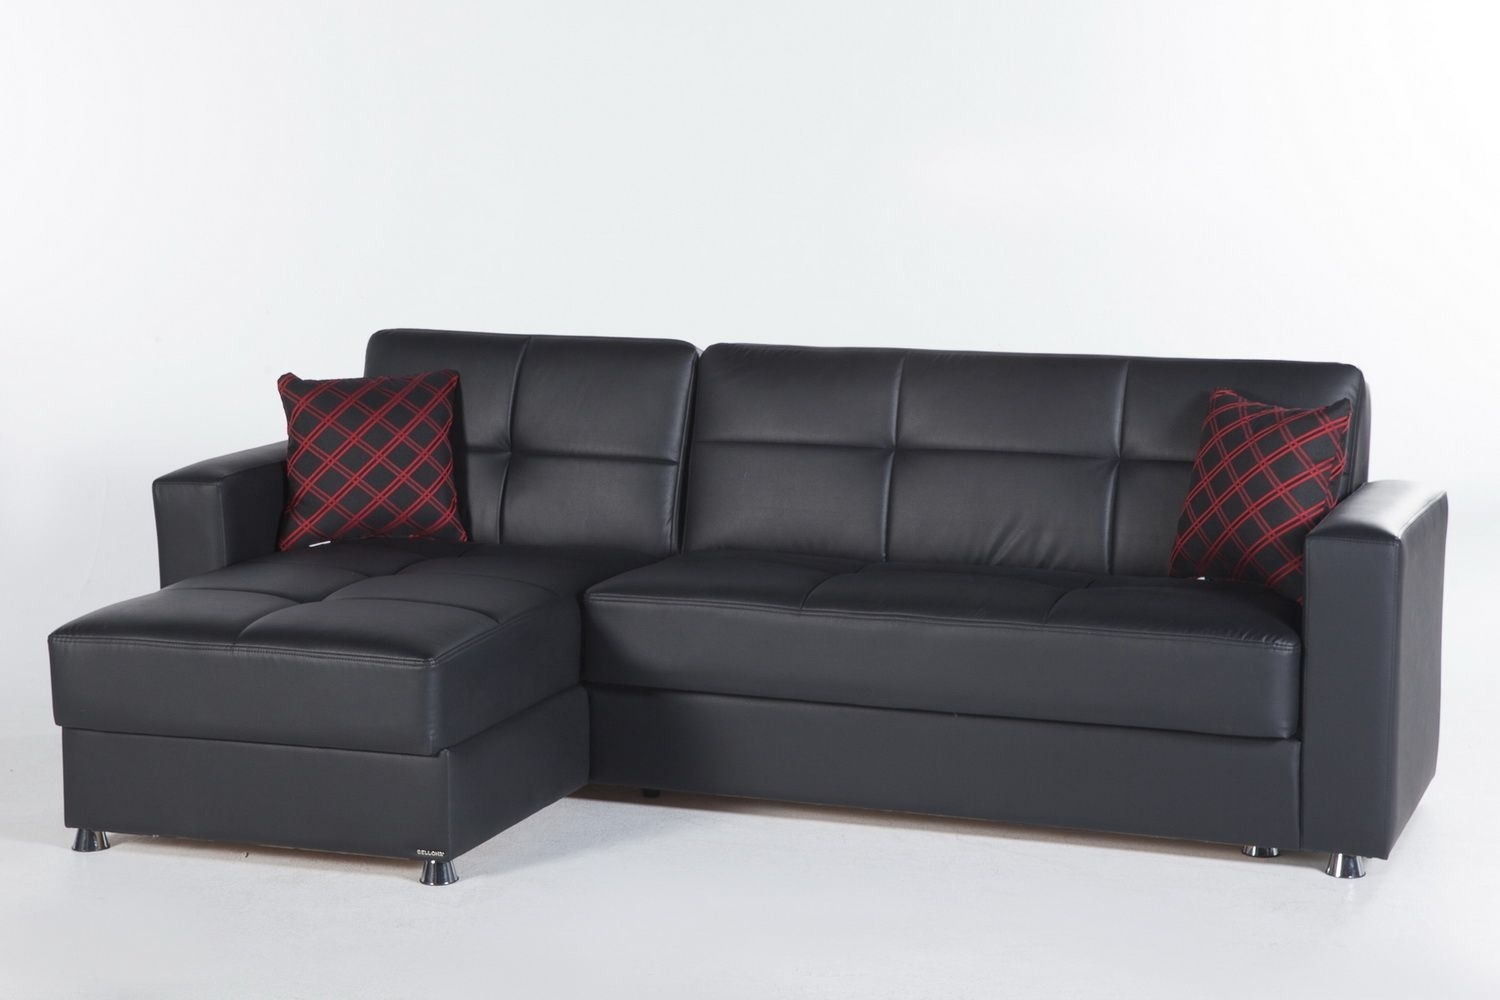 Elegant Sectional Sofa In Santa Glory Blackistikbal | Sectional Regarding Mcculla Sofa Sectionals With Reversible Chaise (View 13 of 30)